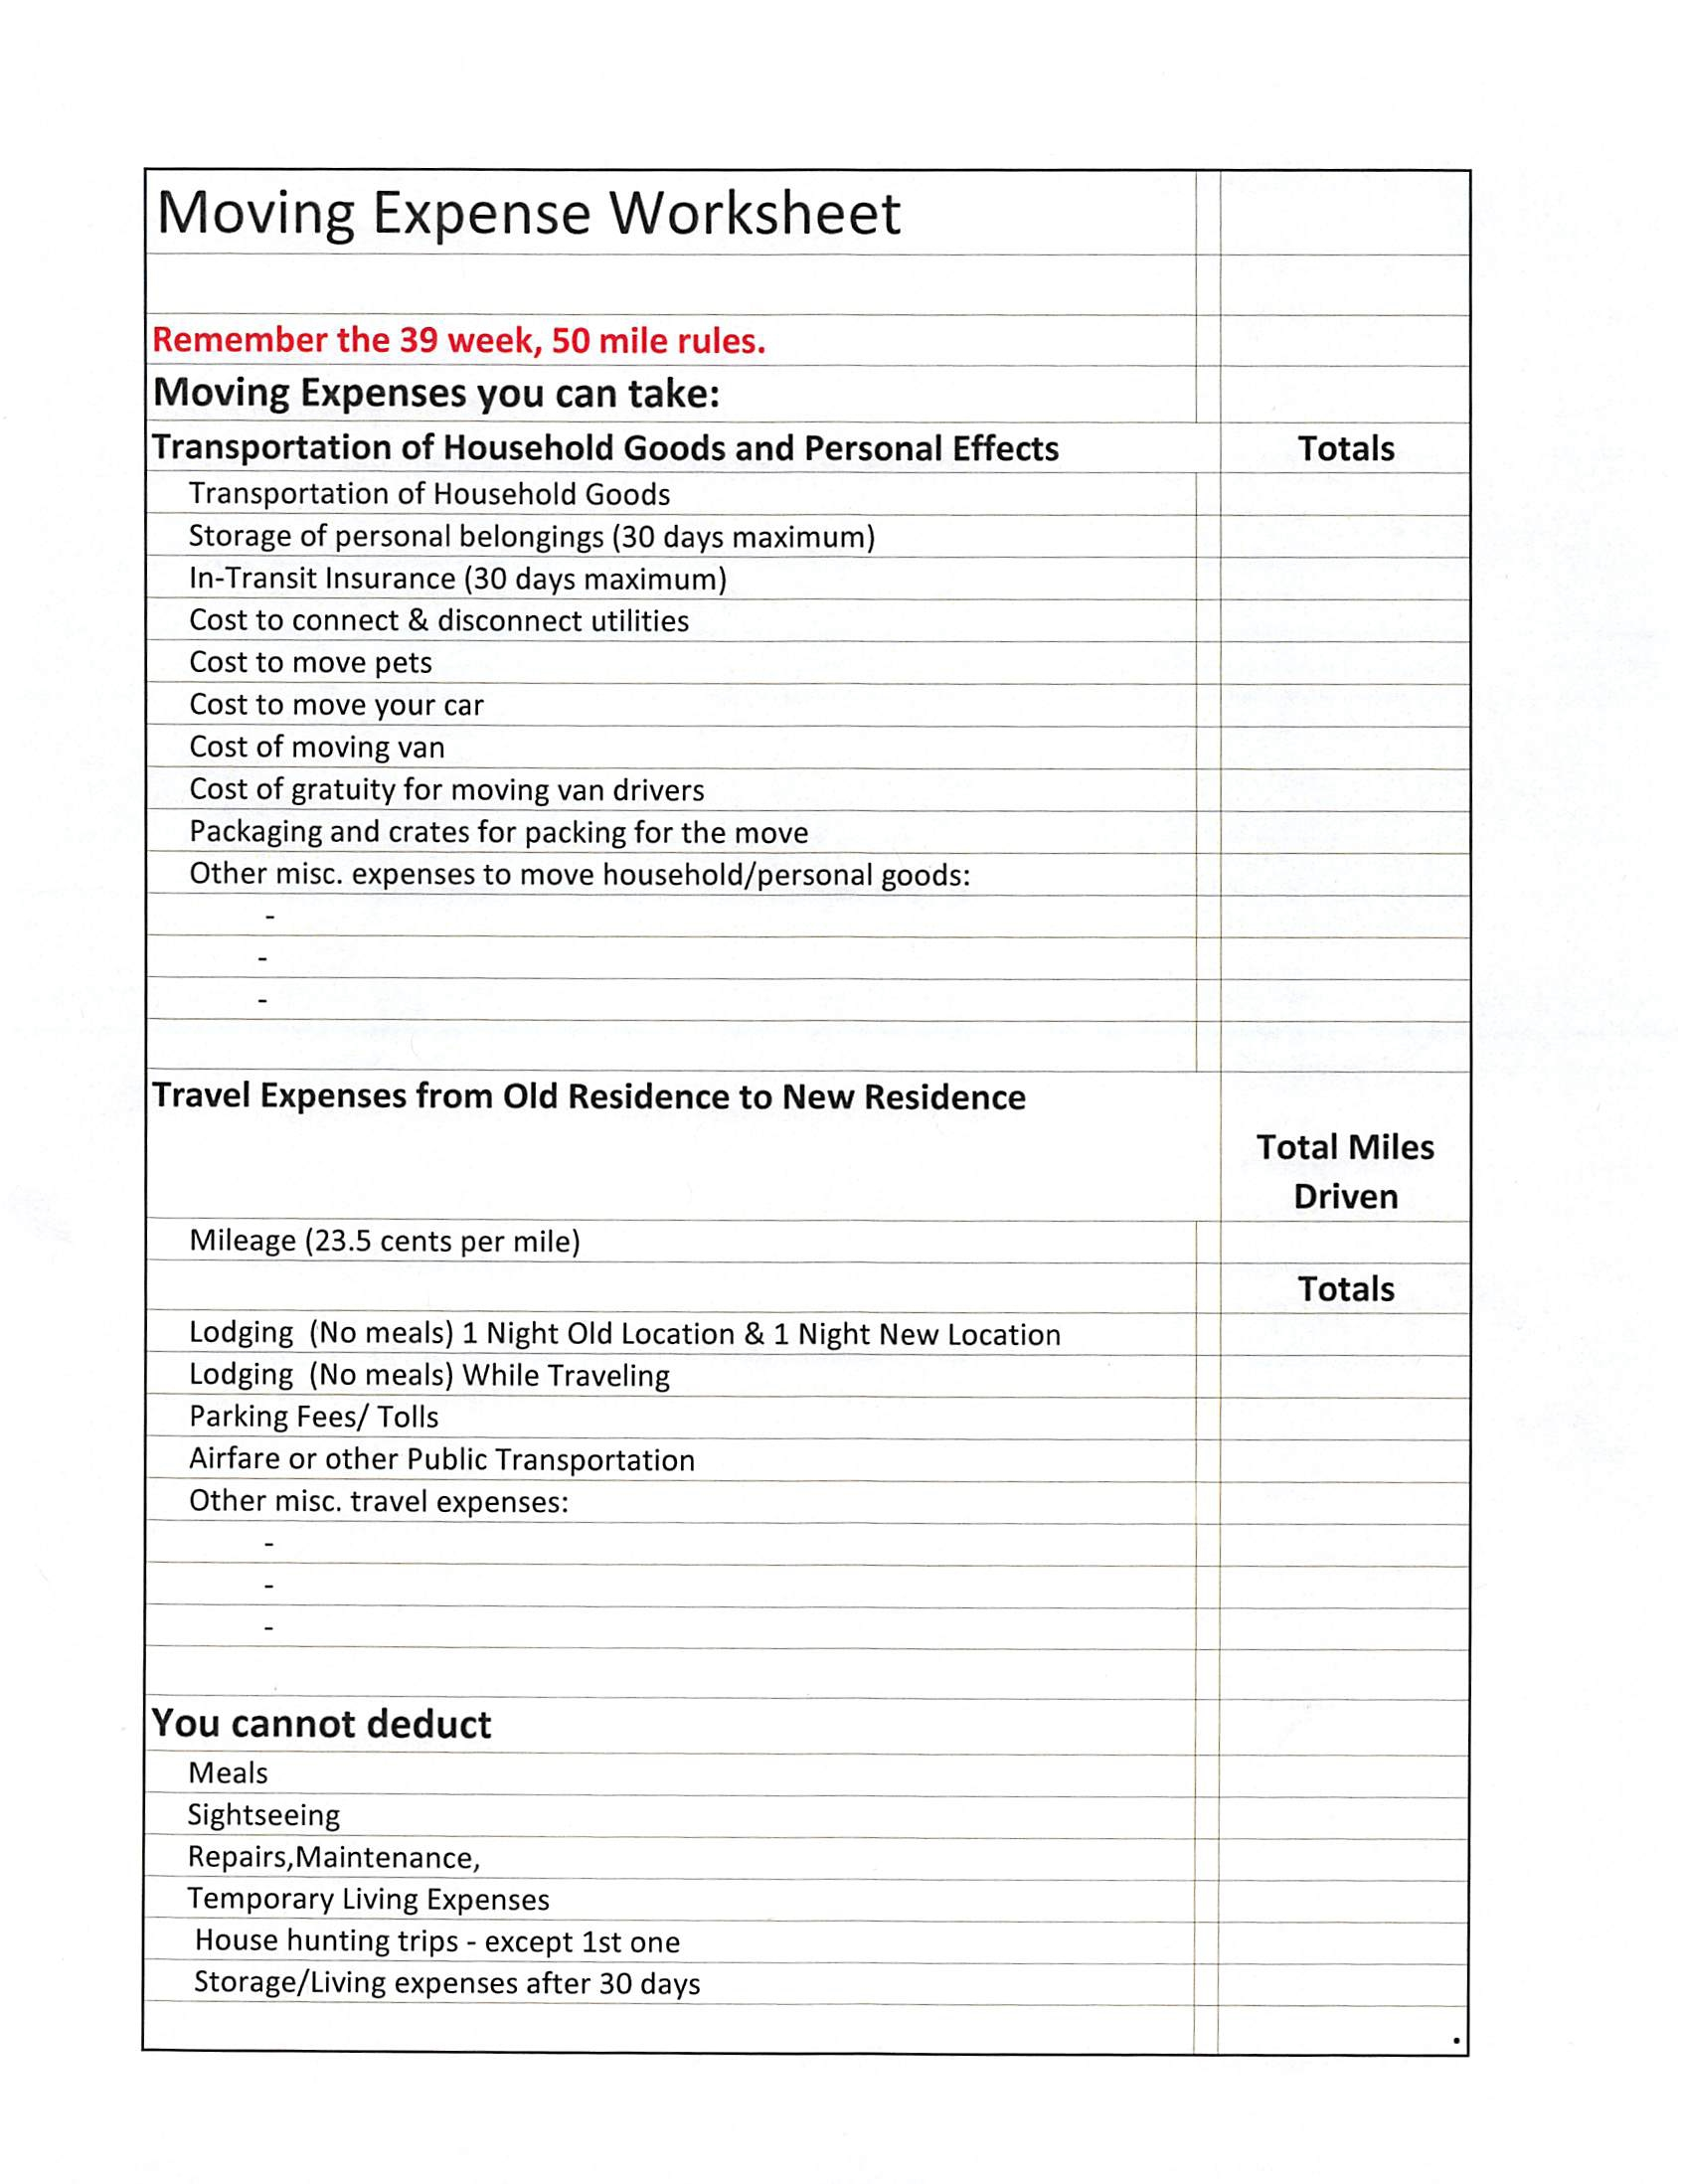 Michigan Income Tax Worksheet